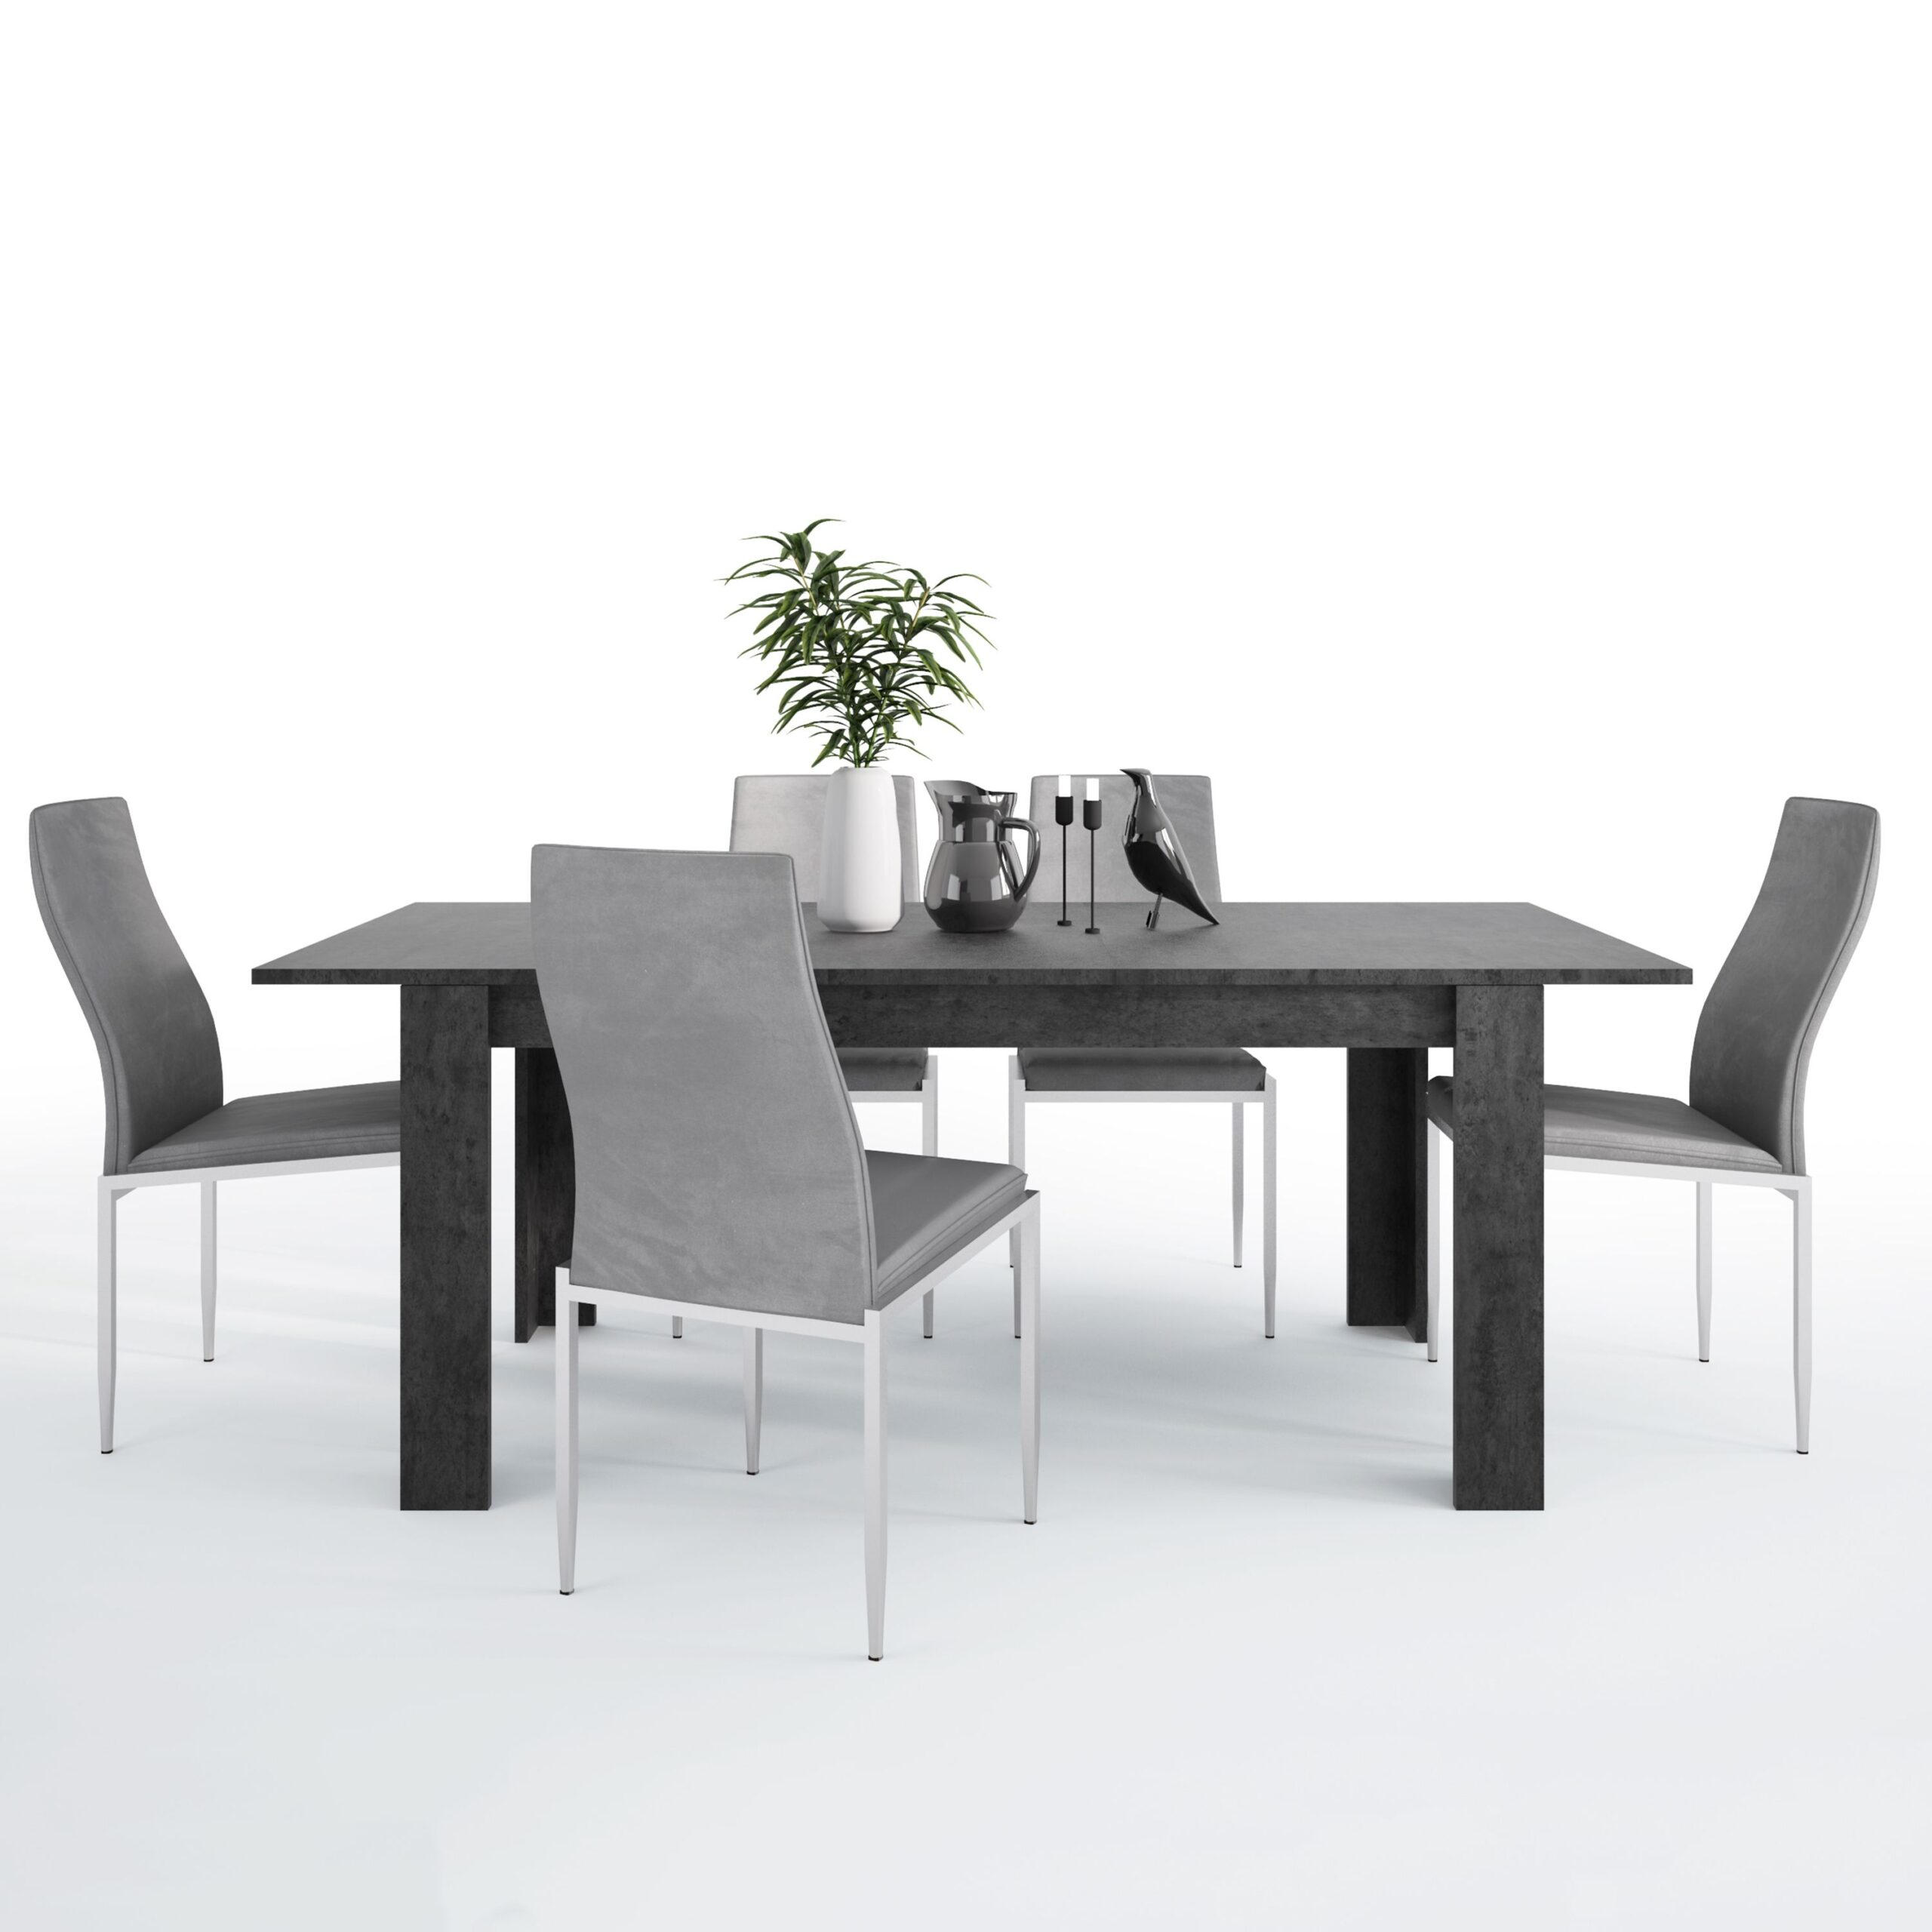 Gerzing Dining set package Gerzing Dining table + 4 Lillie High Back Chair Grey.